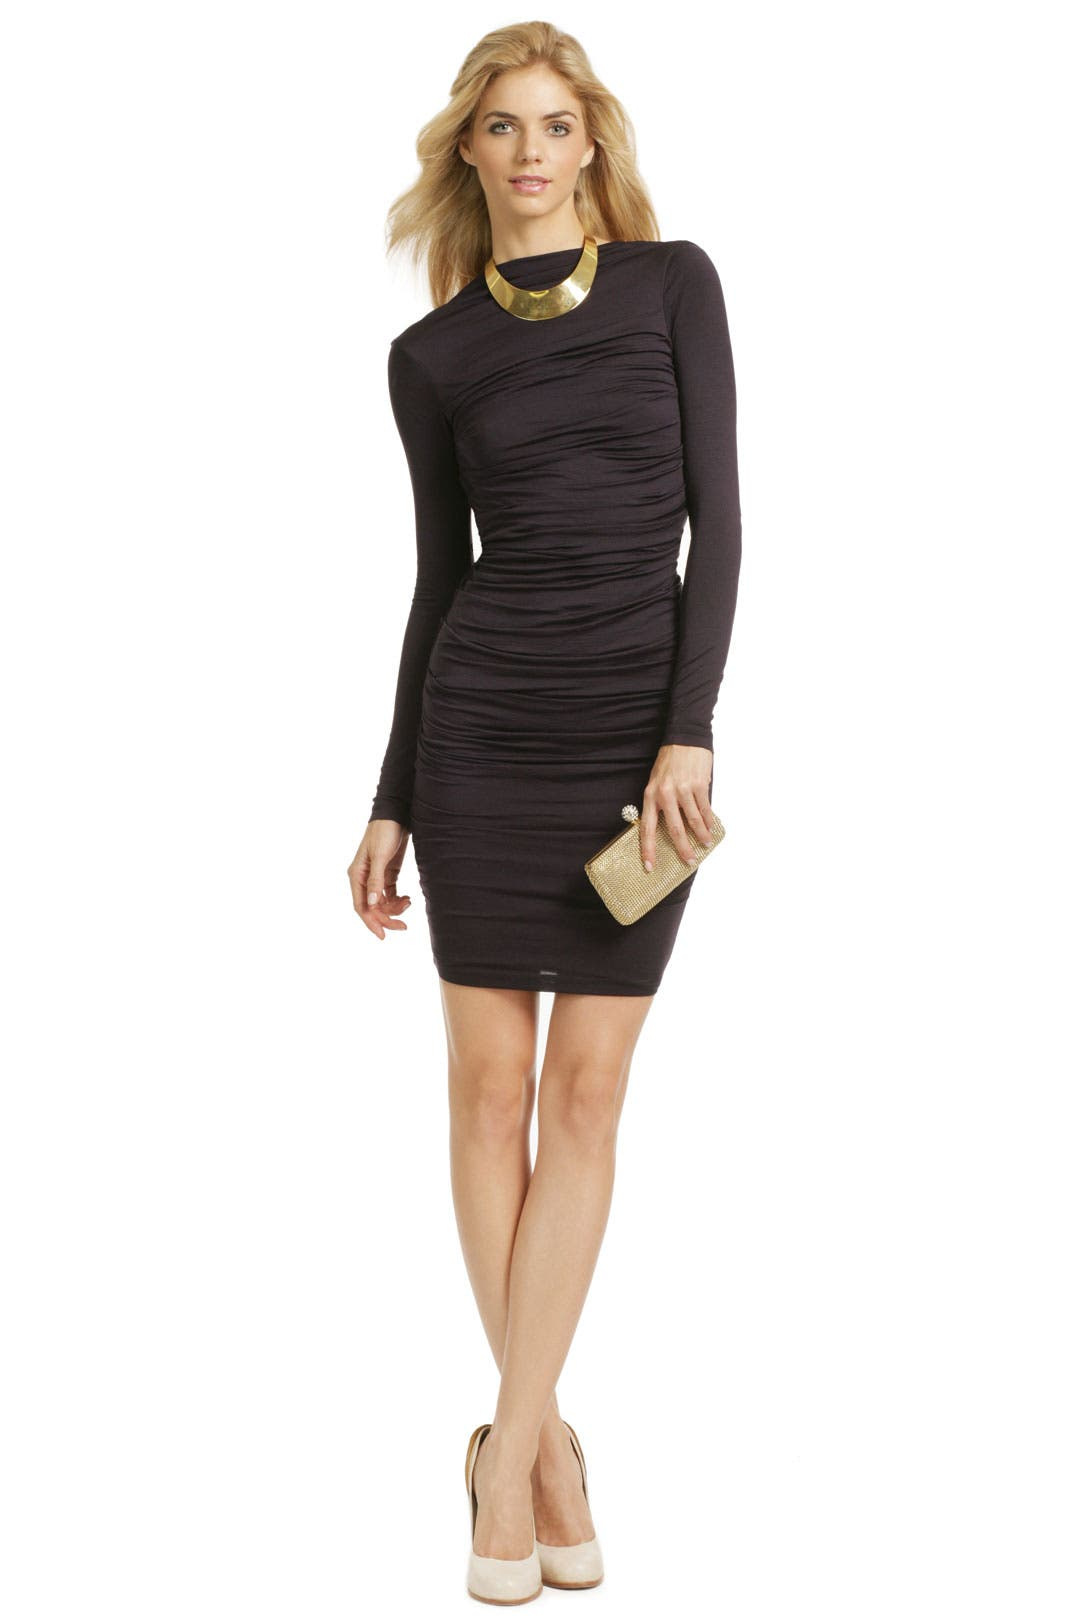 Talk The Talk Dress by Plein Sud